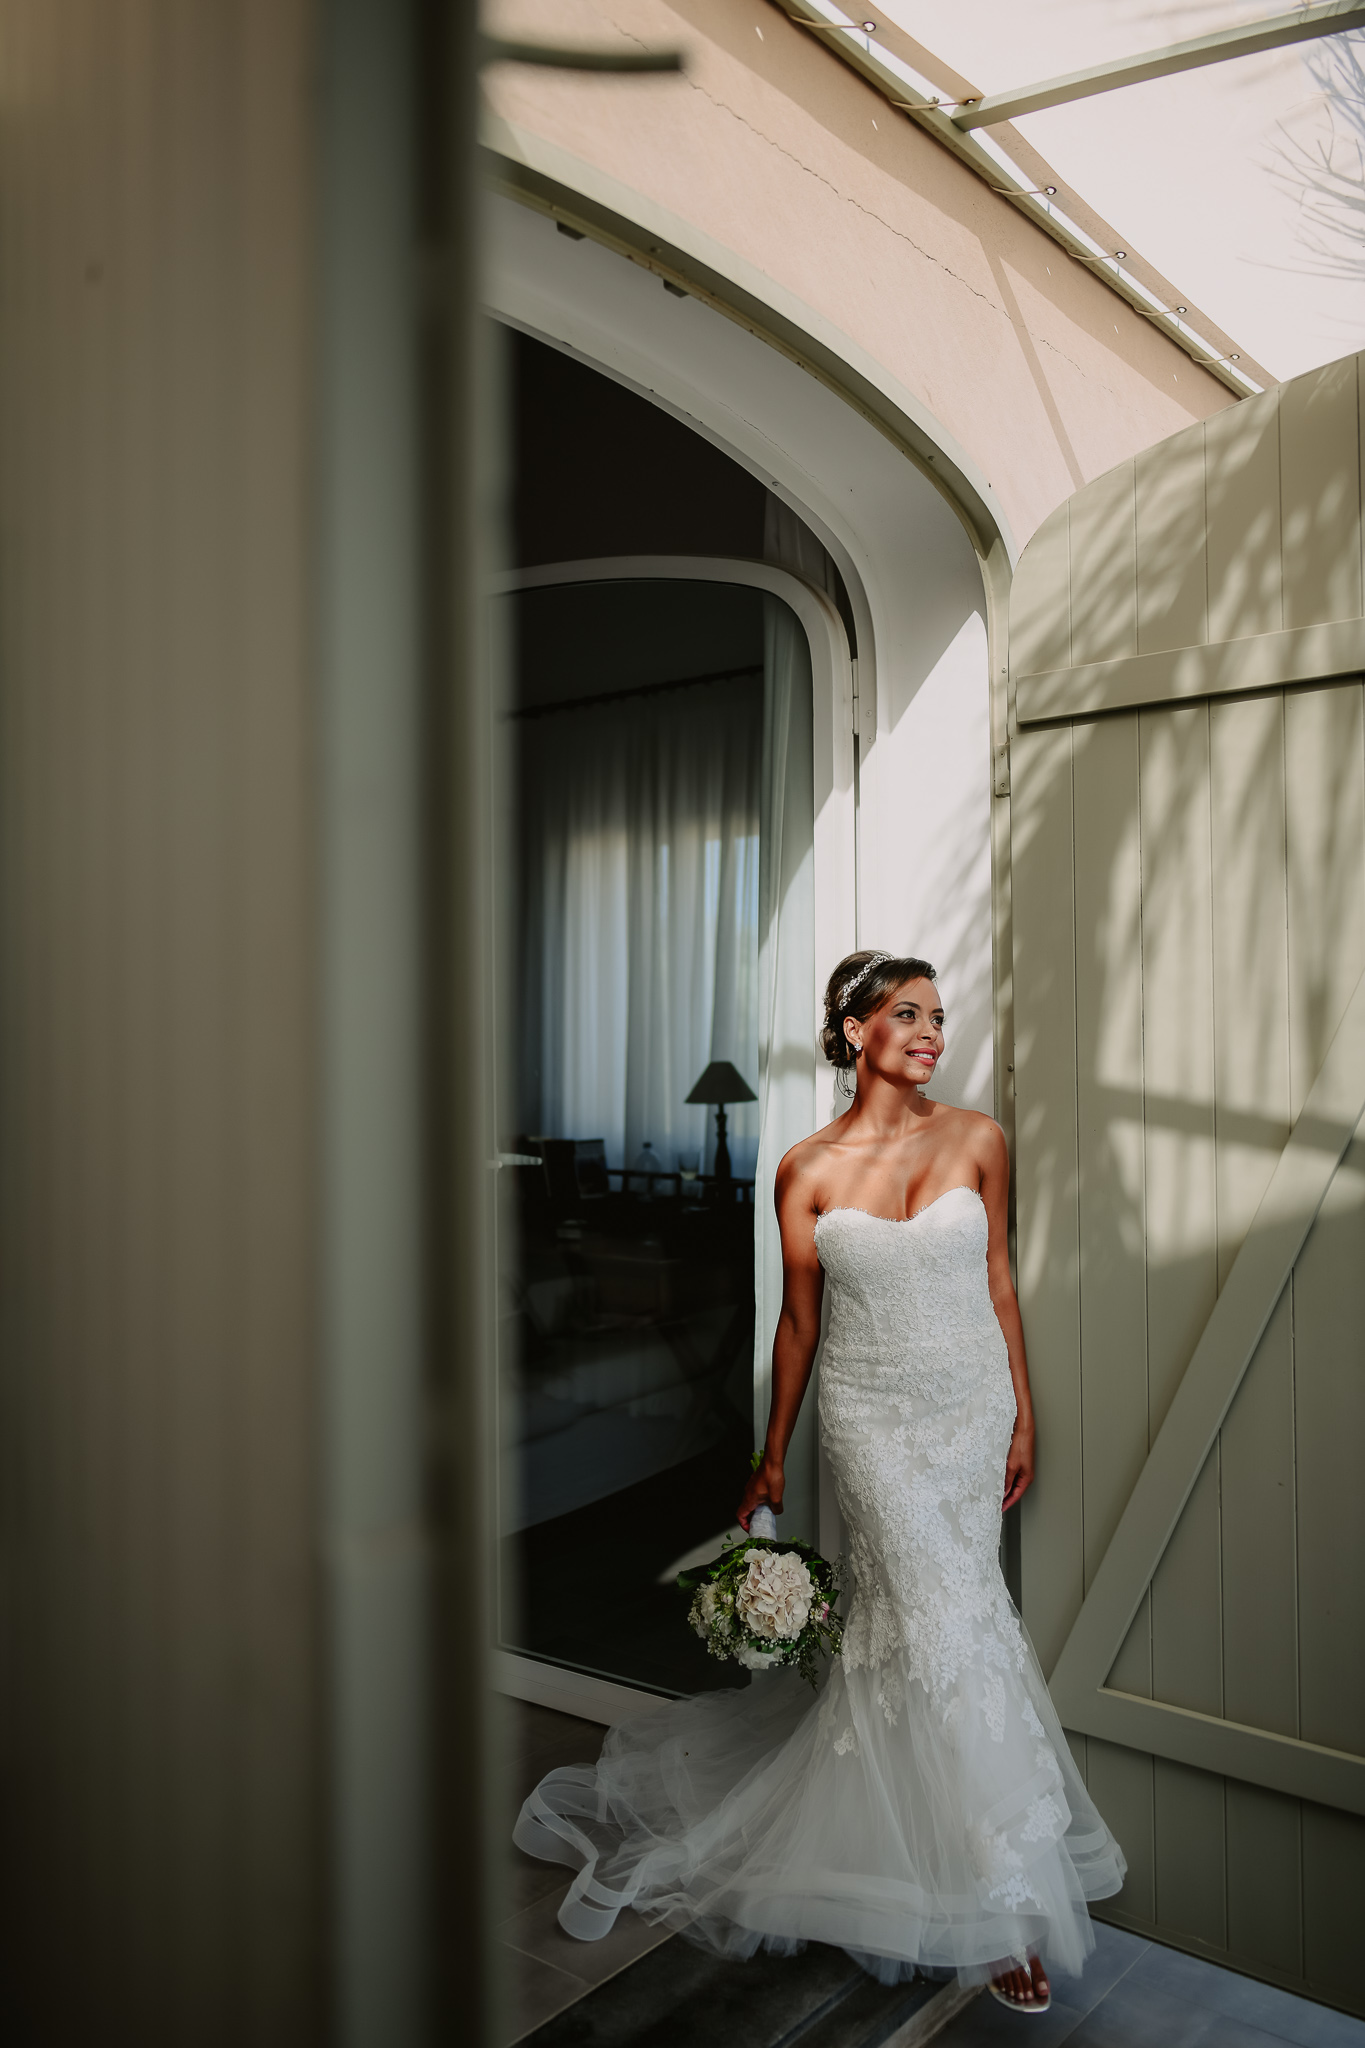 D850-field-test-real-world-review-wedding-sicily-6